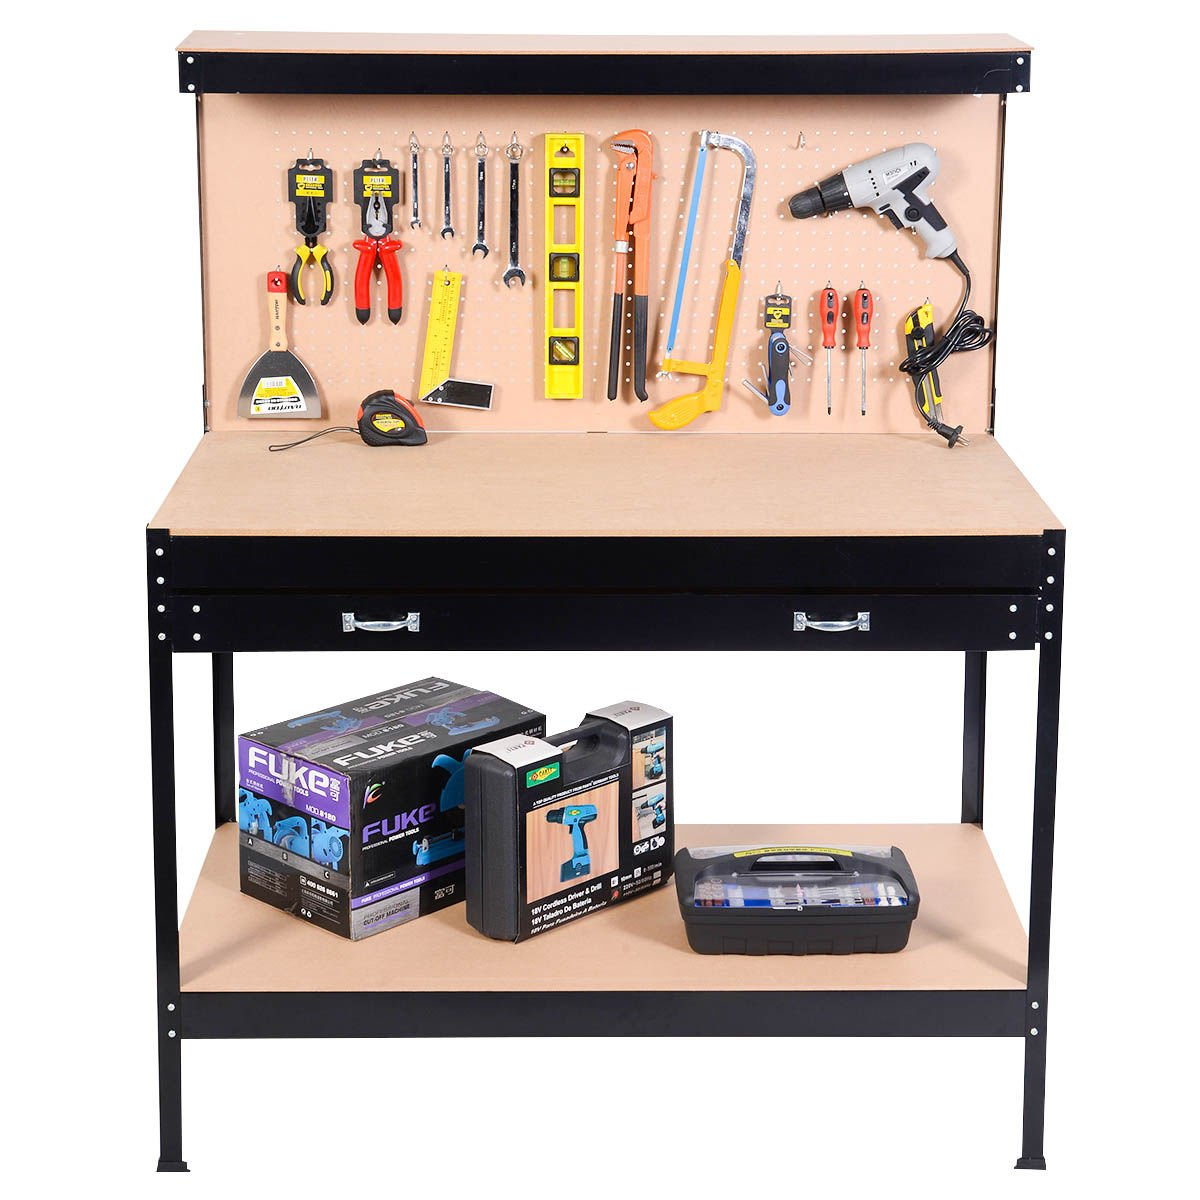 Work Bench Tool Storage Steel Frame Workshop Table W/ Drawer & Peg Board by Allblessings (Image #4)